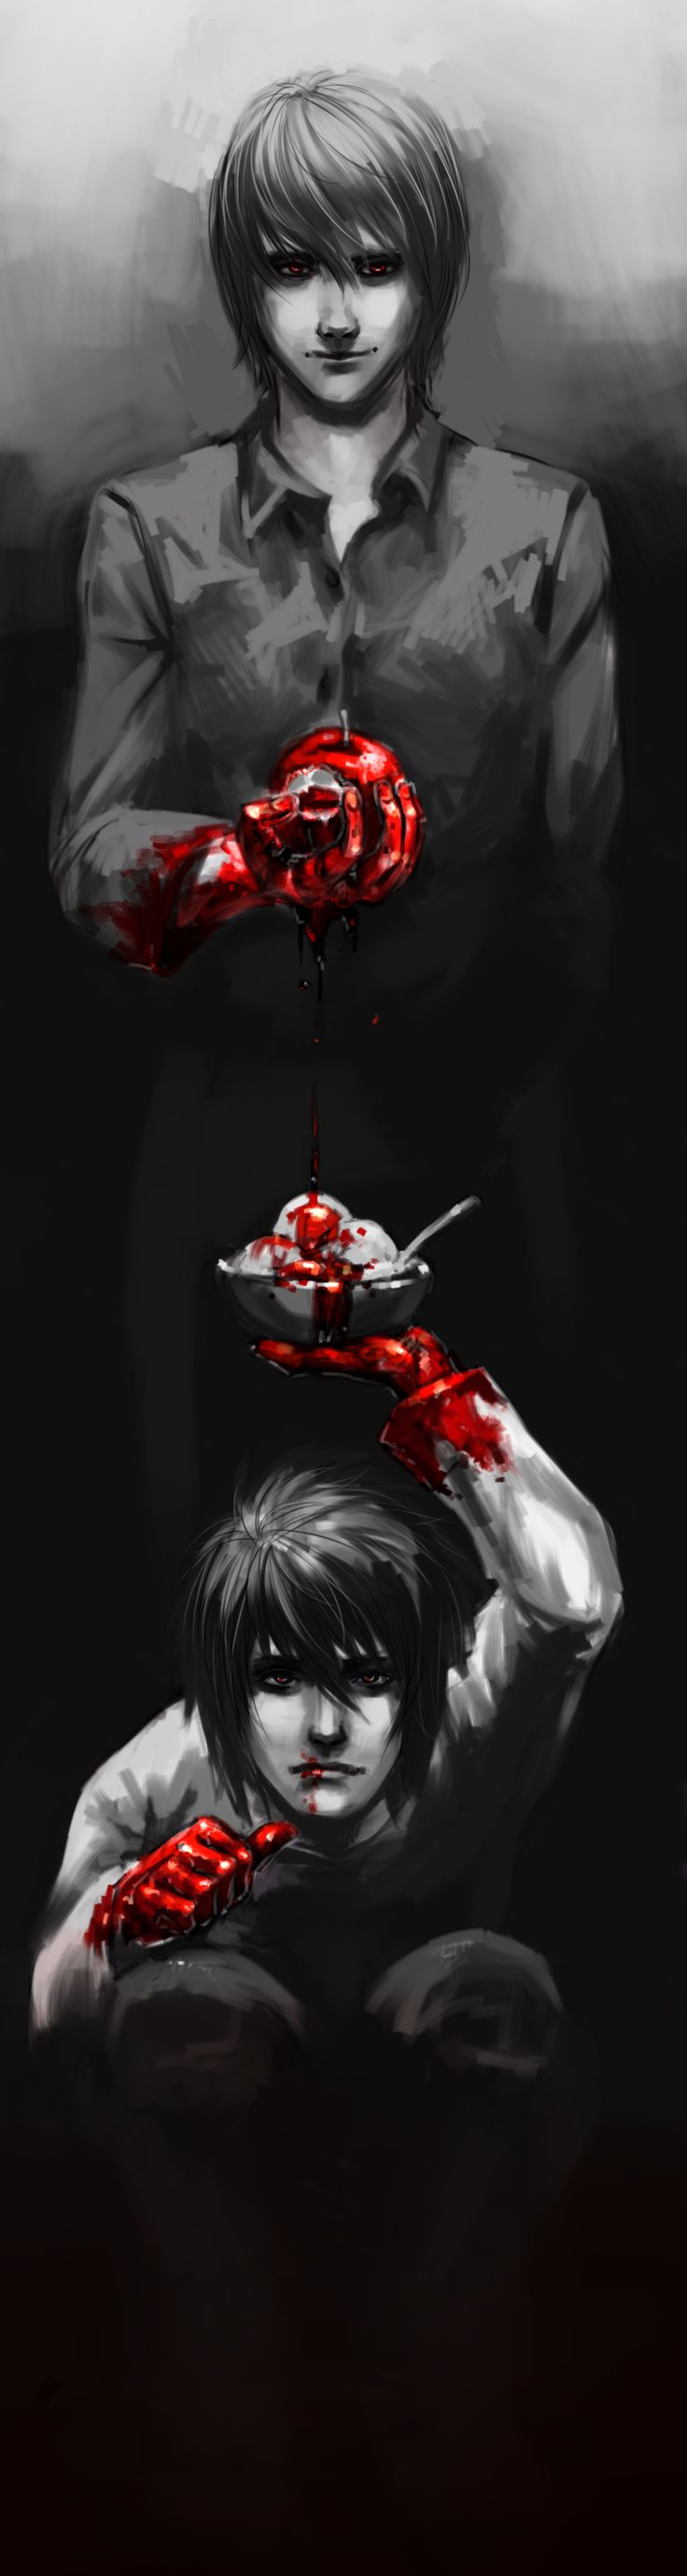 have blood on hands